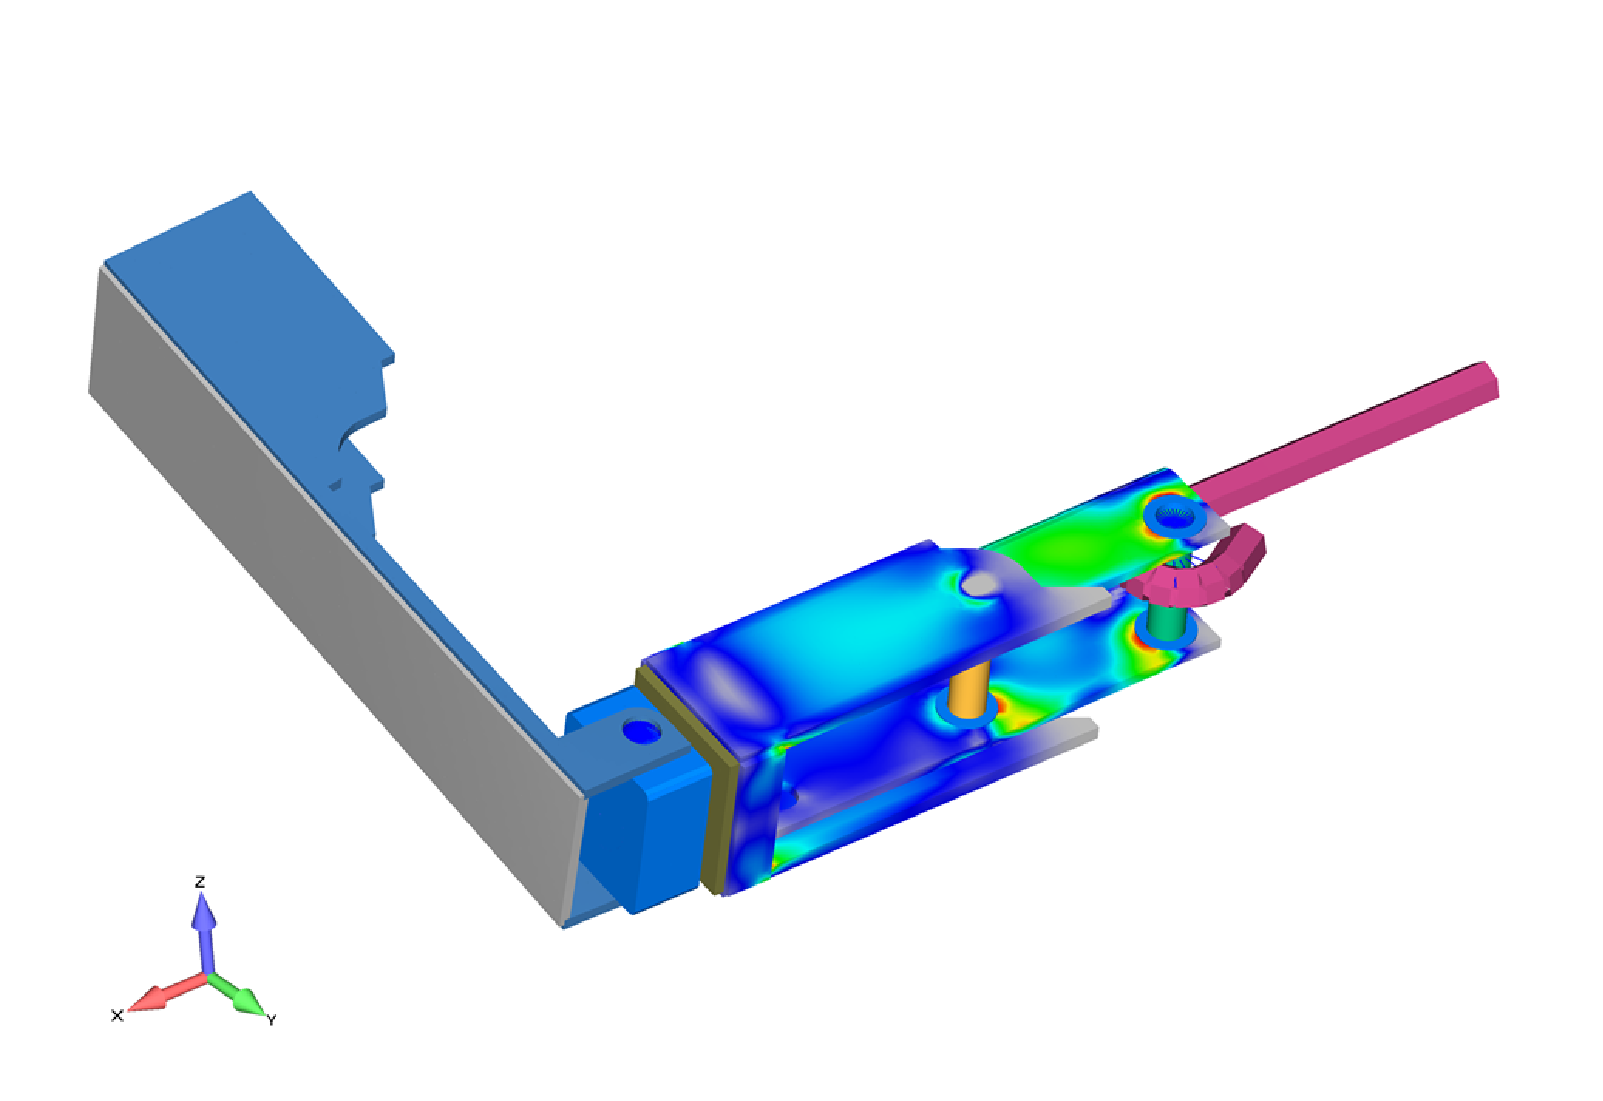 Figure 9: FEA Simulation of hand tool for ultimate mechanical strength during hex nut torque operations.  Stress and deflection analysis to determine optimized ergometric operation.